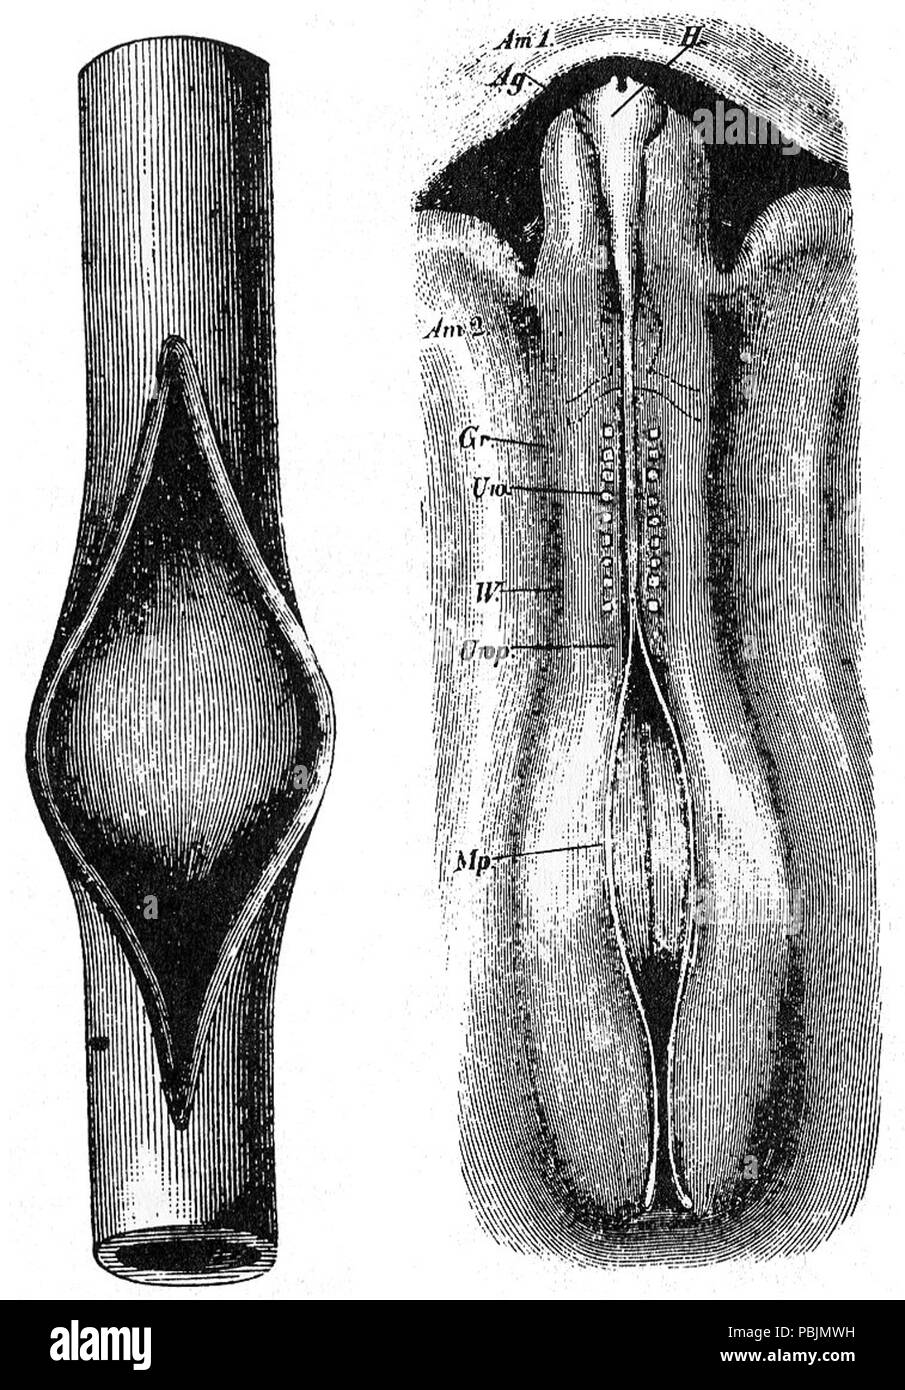 1853 Wilhelm His chick embryo compared to slit rubber tube - Stock Image